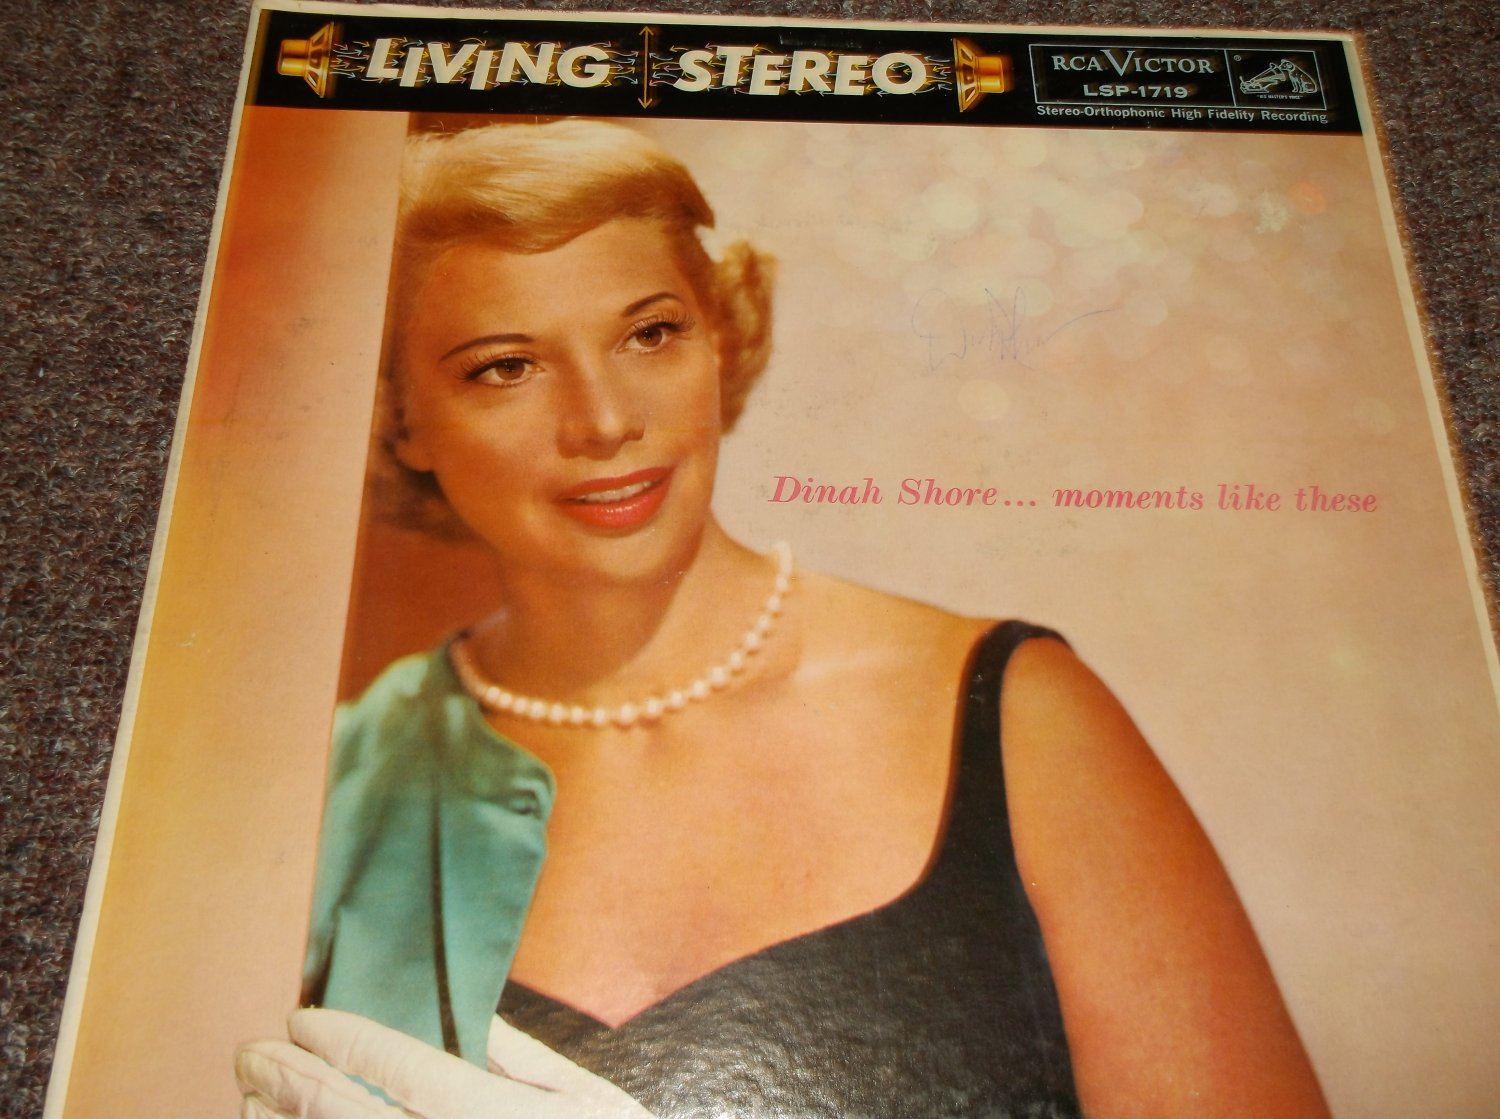 Dinah Shore (1916-94) signed 1958 LP cover